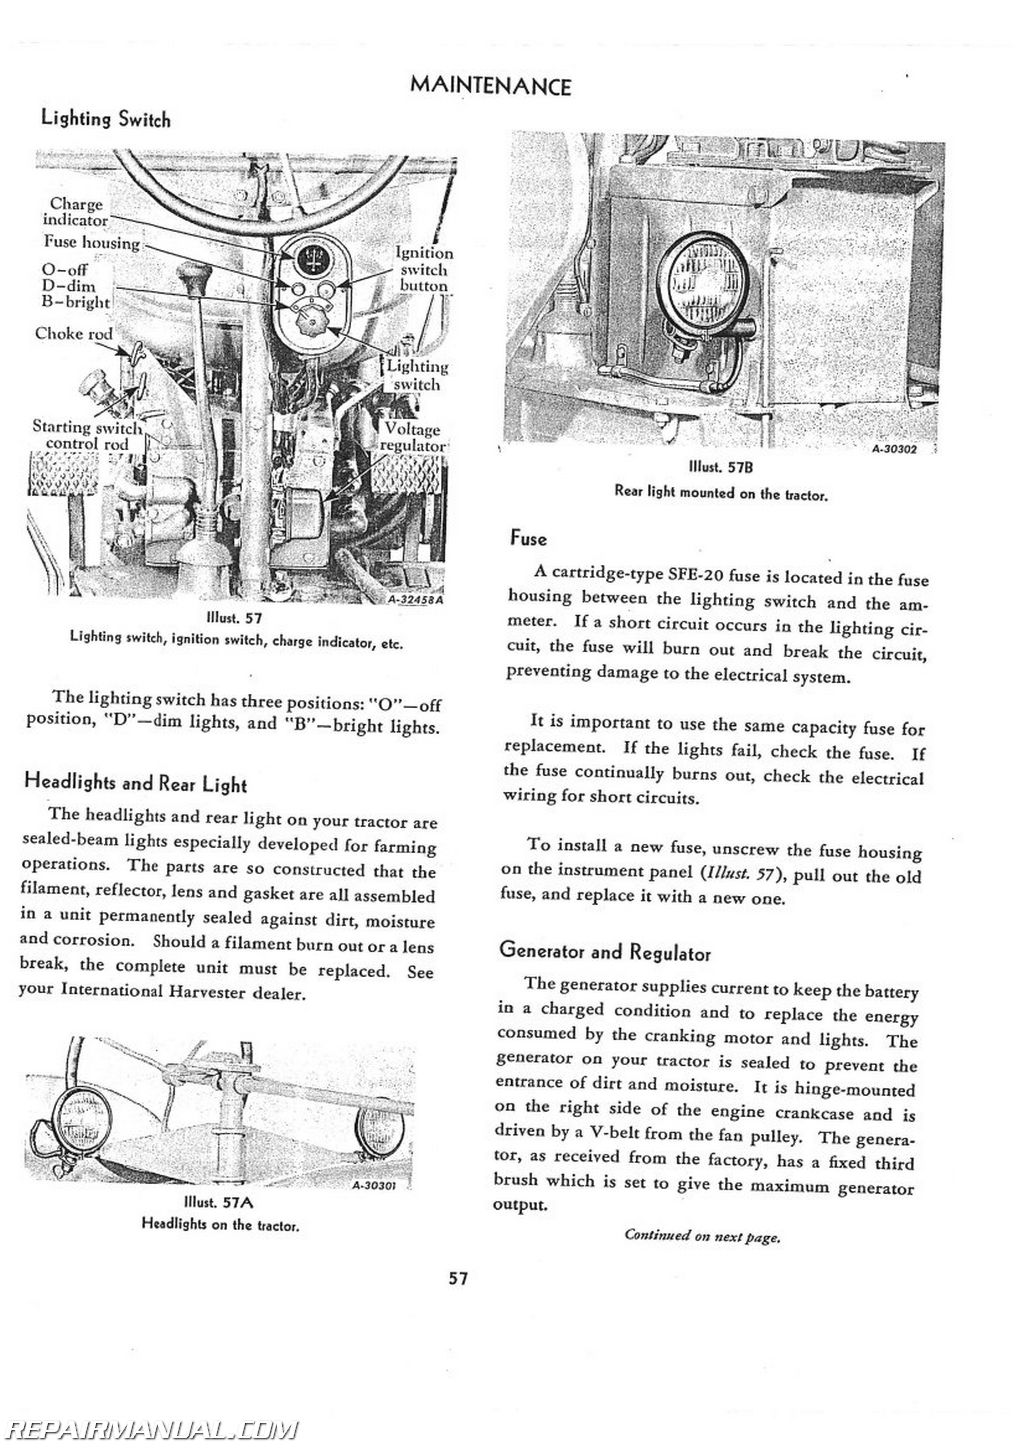 hight resolution of 1954 international farmall wiring diagram wiring library rh 54 codingcommunity de farmall super a tractor diagram